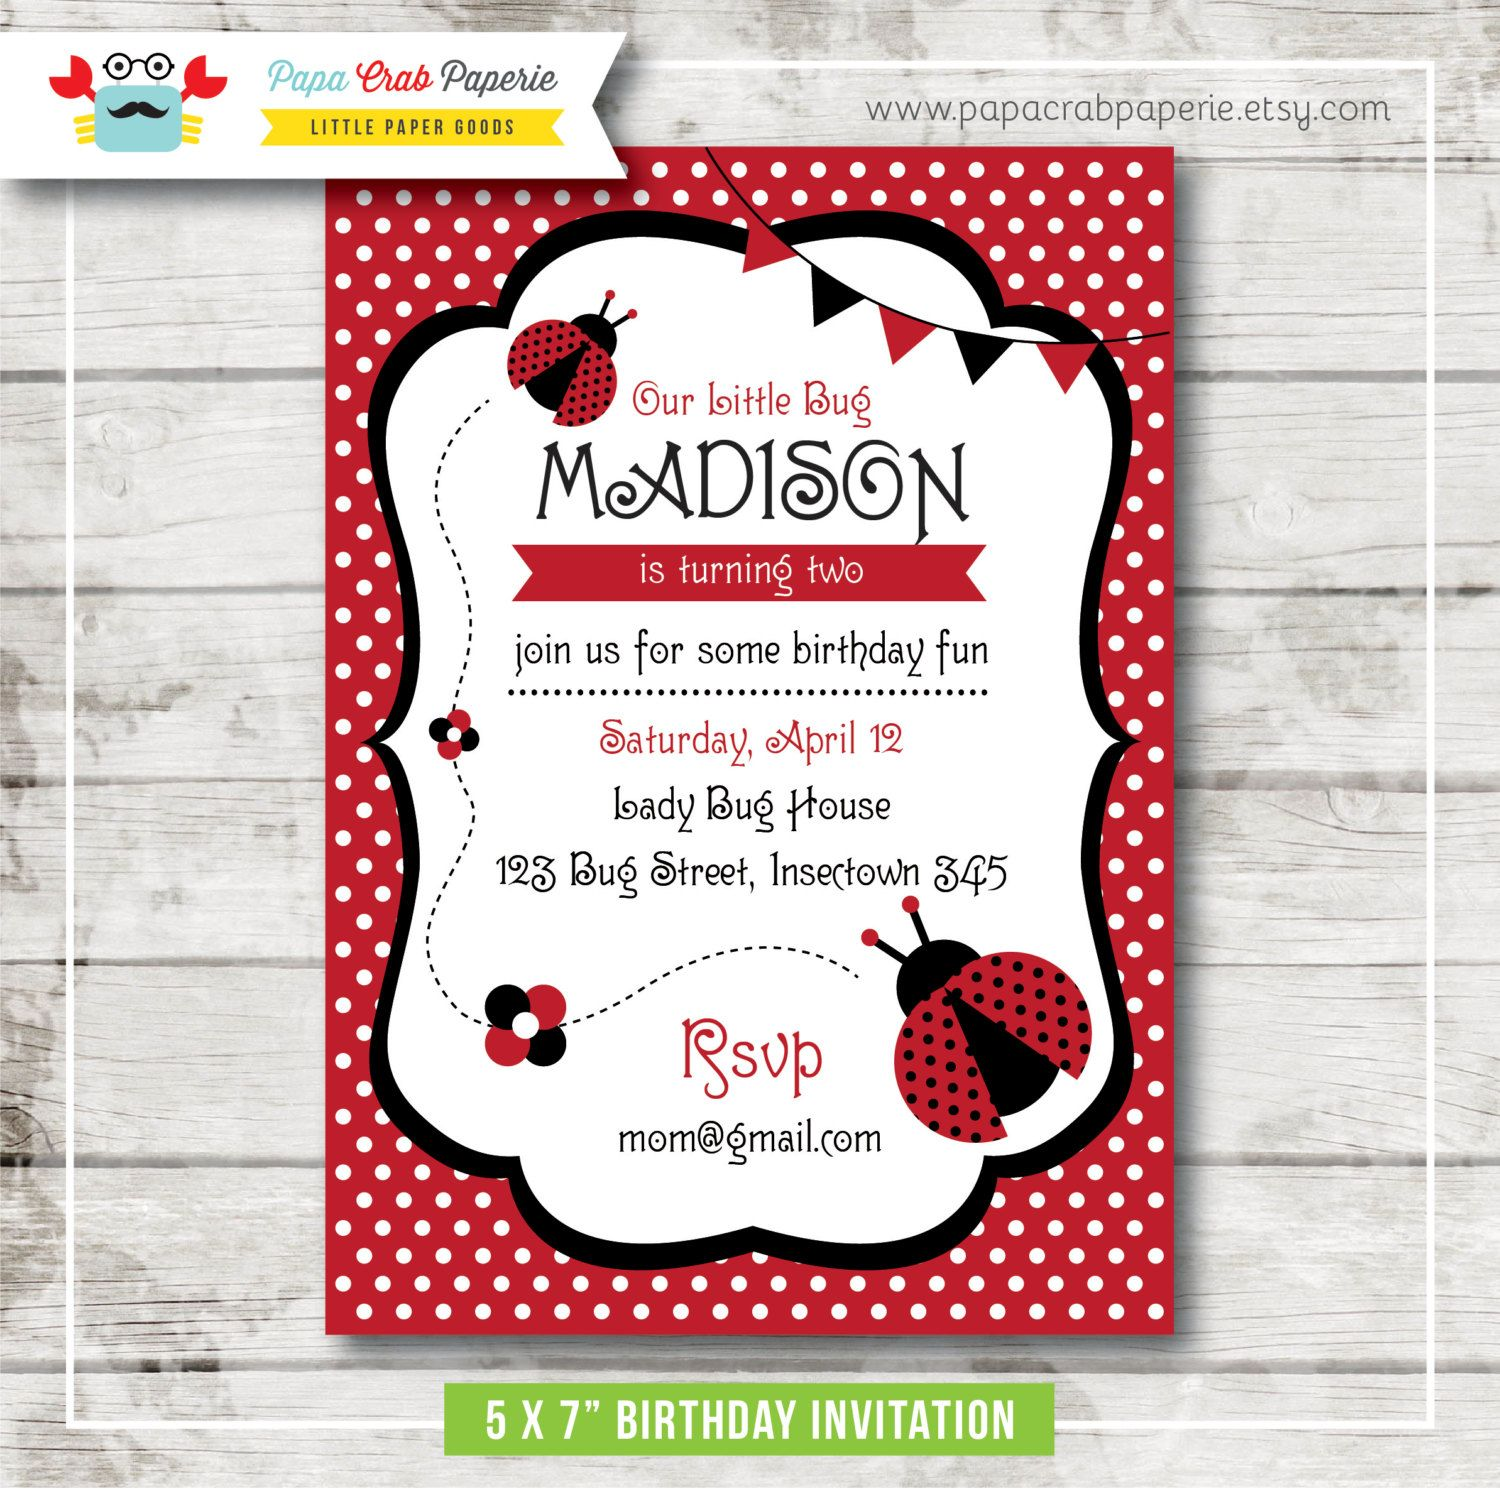 Lady Bug Birthday Party Invitation DIY Party Printables First